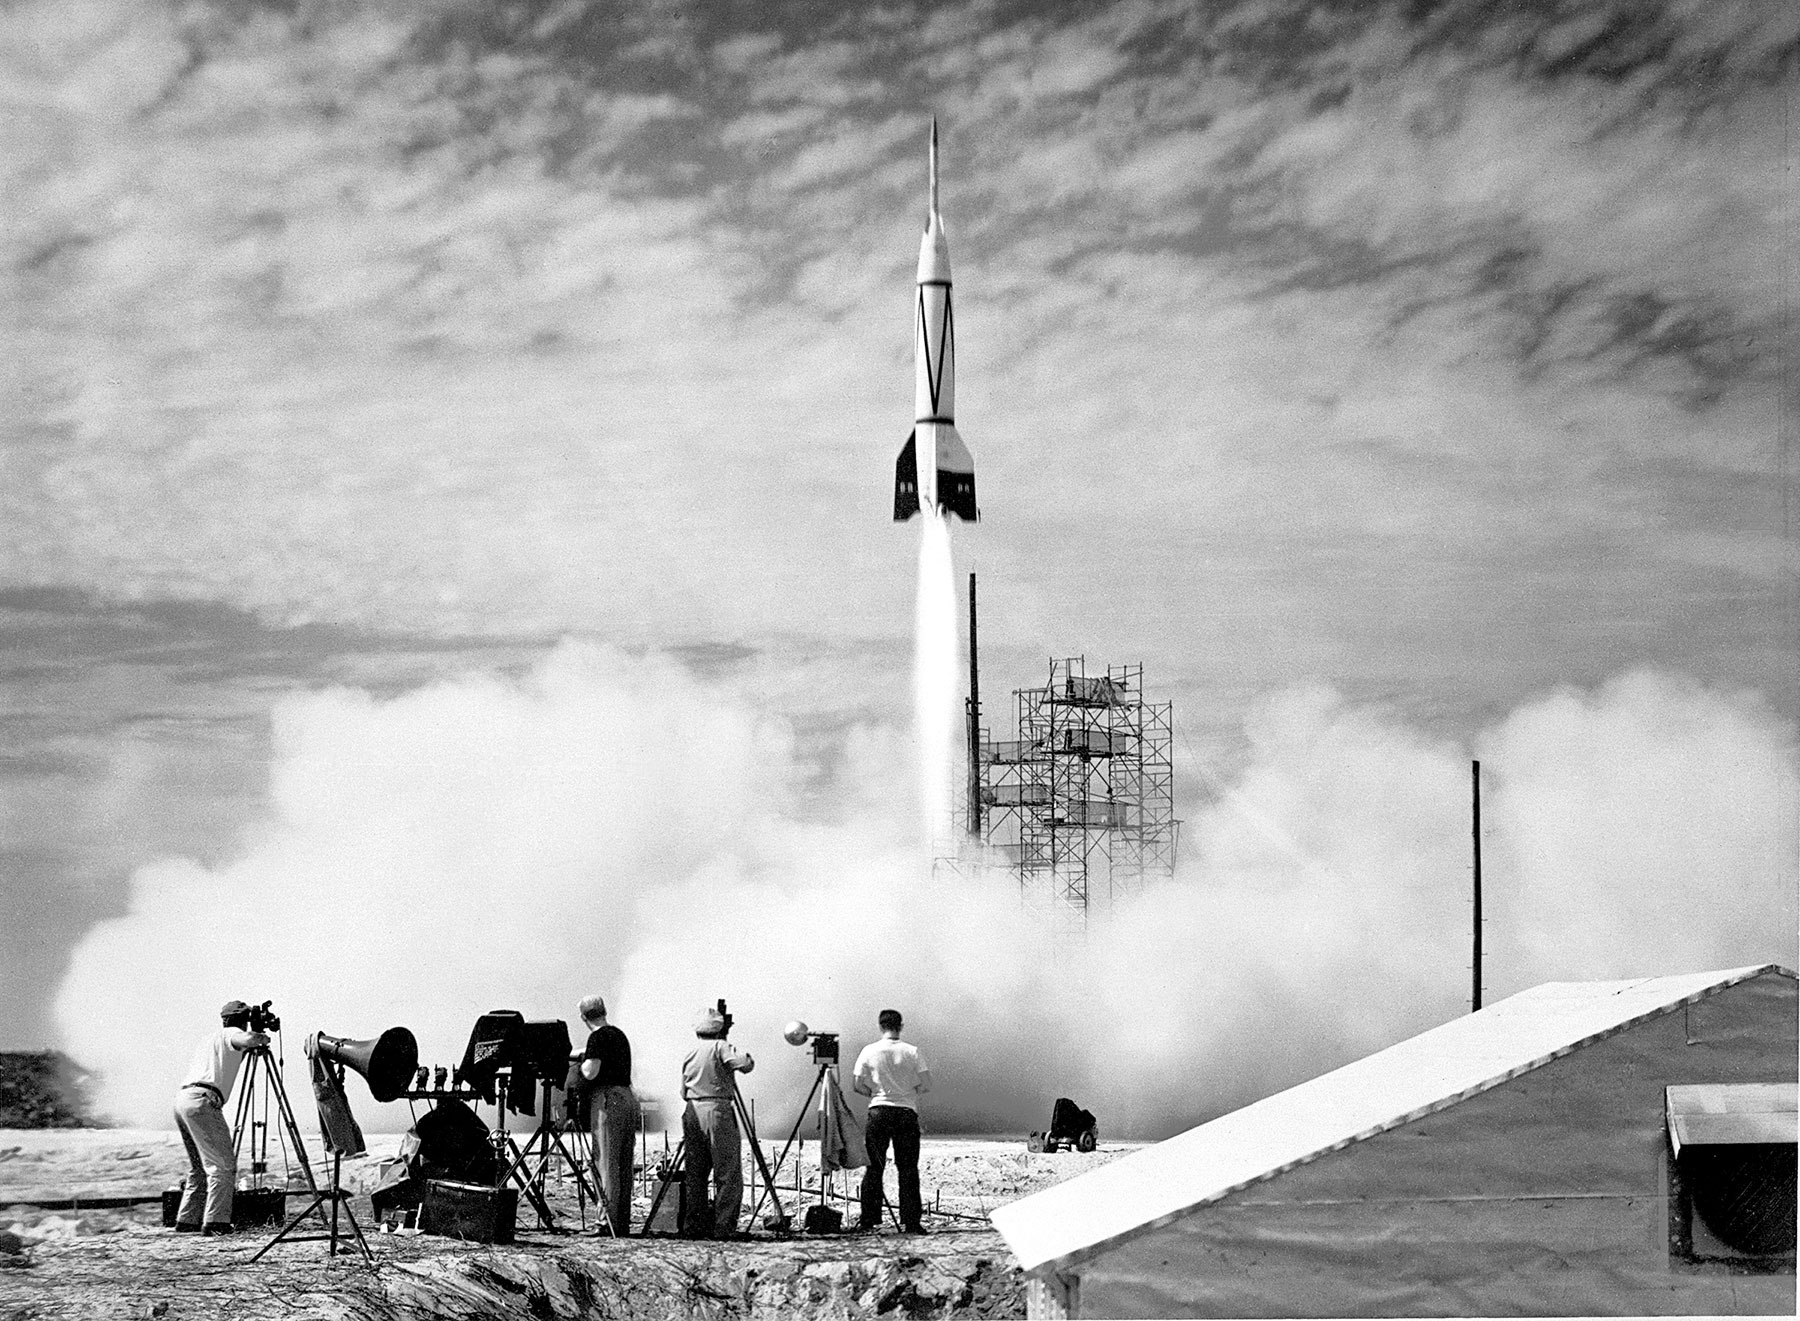 A Bumper rocket soars above Cape Canaveral Air Force Station, in what was the first ever launch from the spaceport.